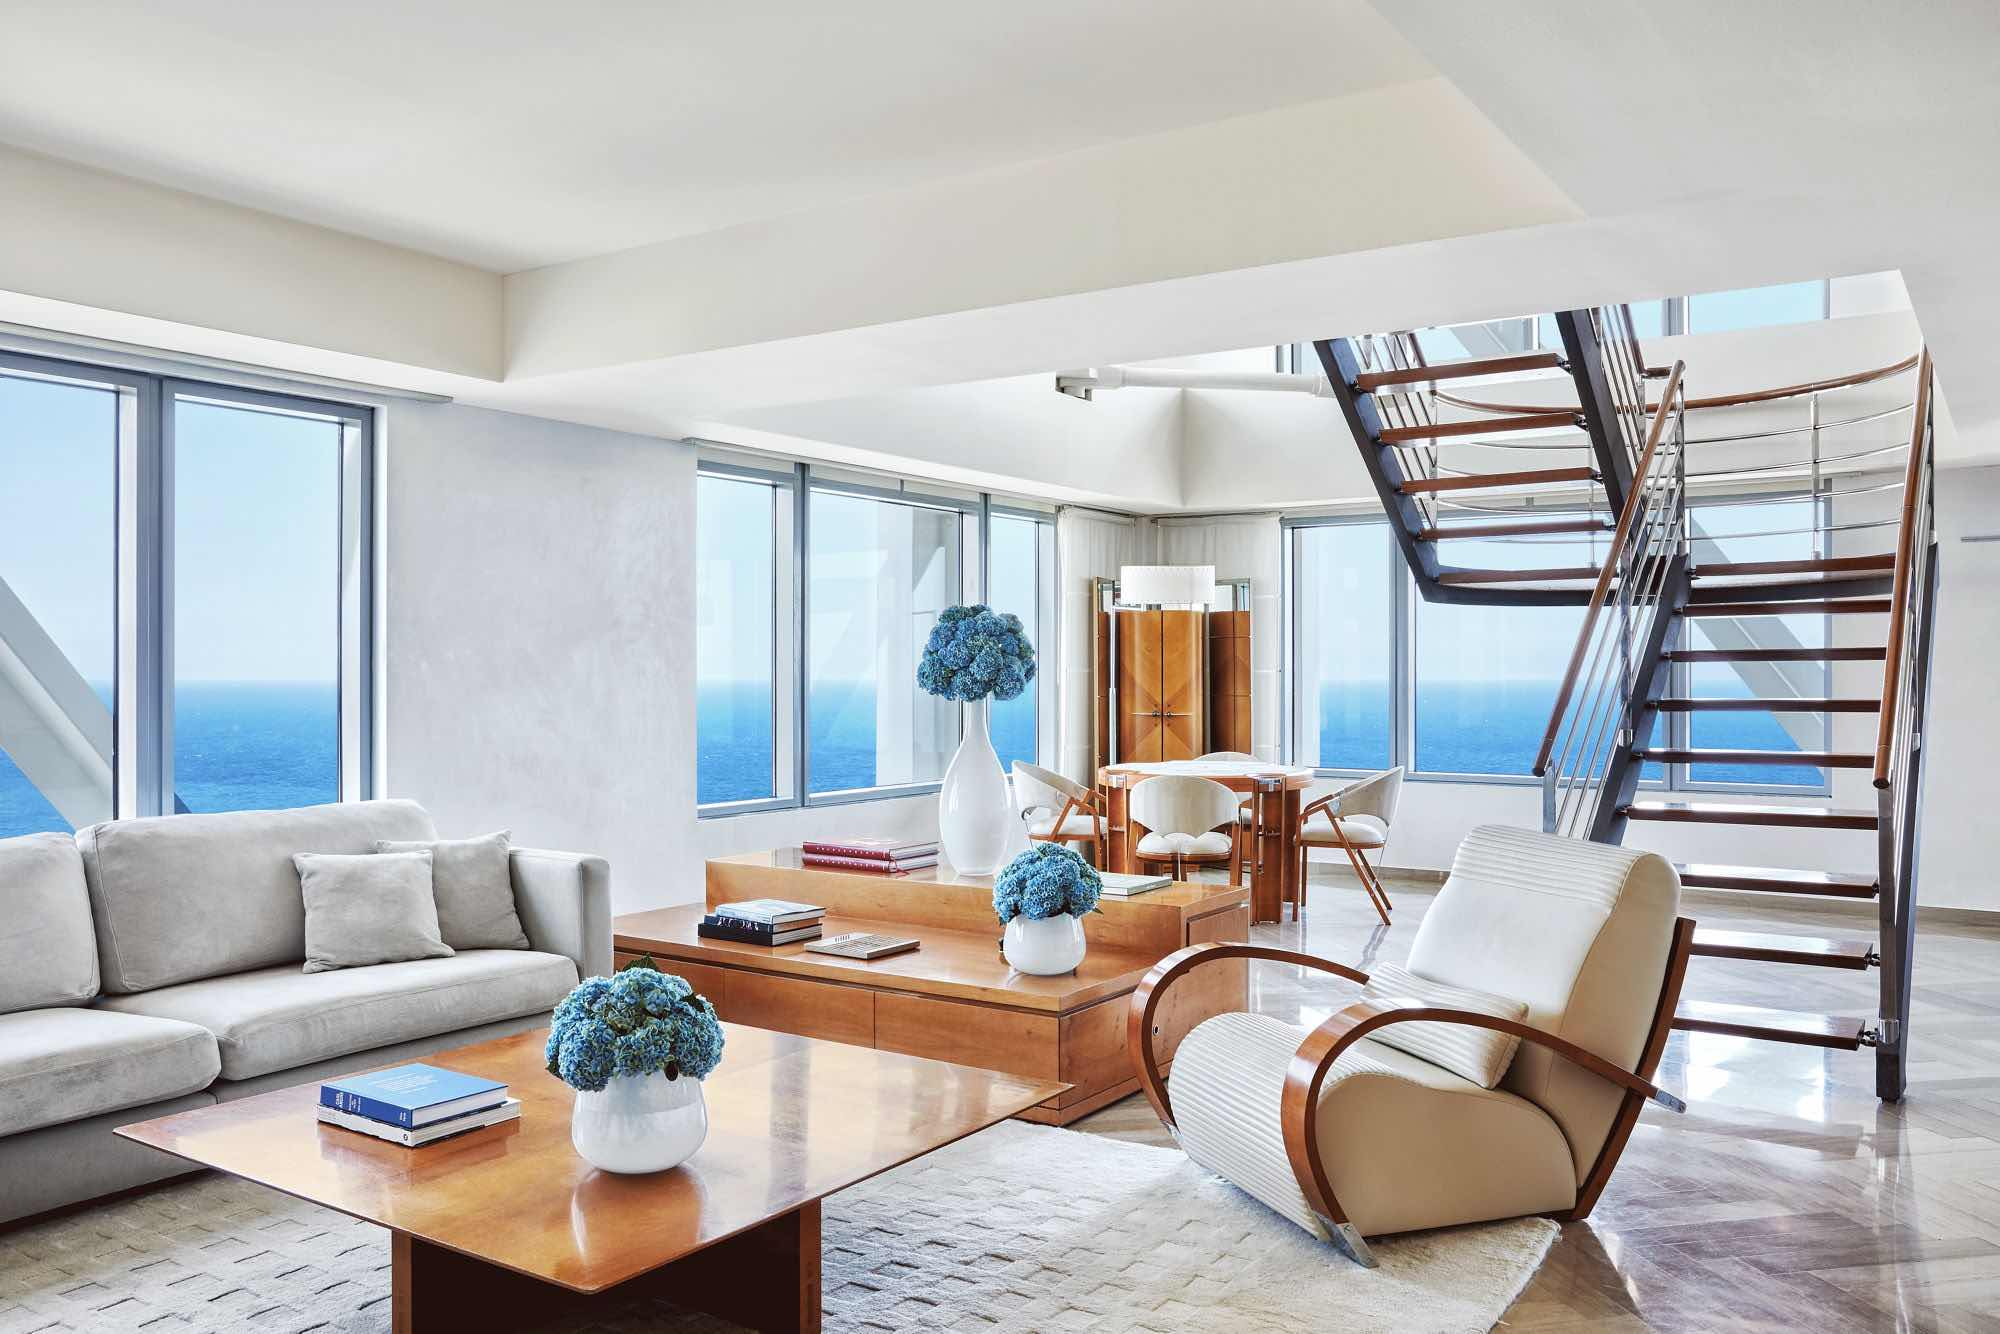 Hotel Arts Barcelona is one of the top luxury hotels in Barcelona showing loft room with sea views